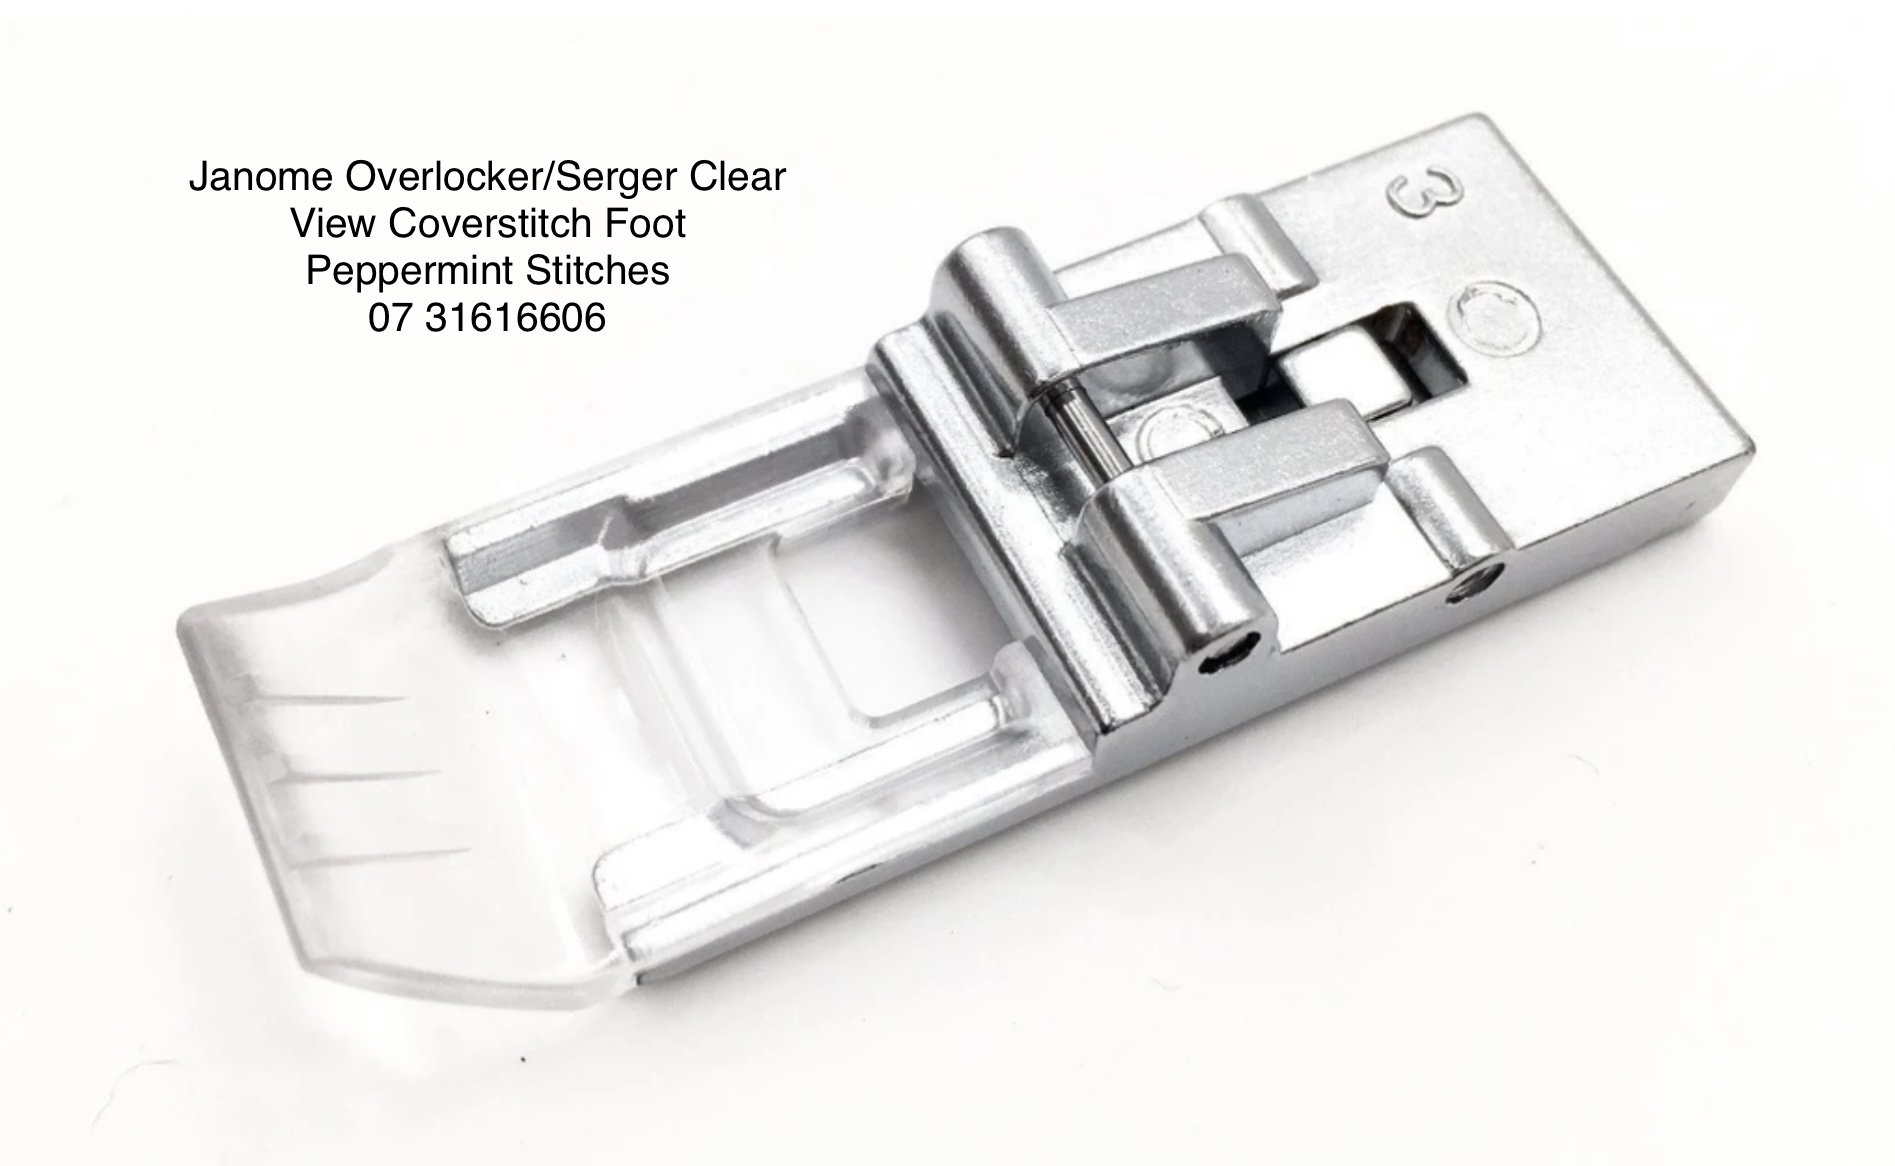 Janome Coverstitch Clear View Foot